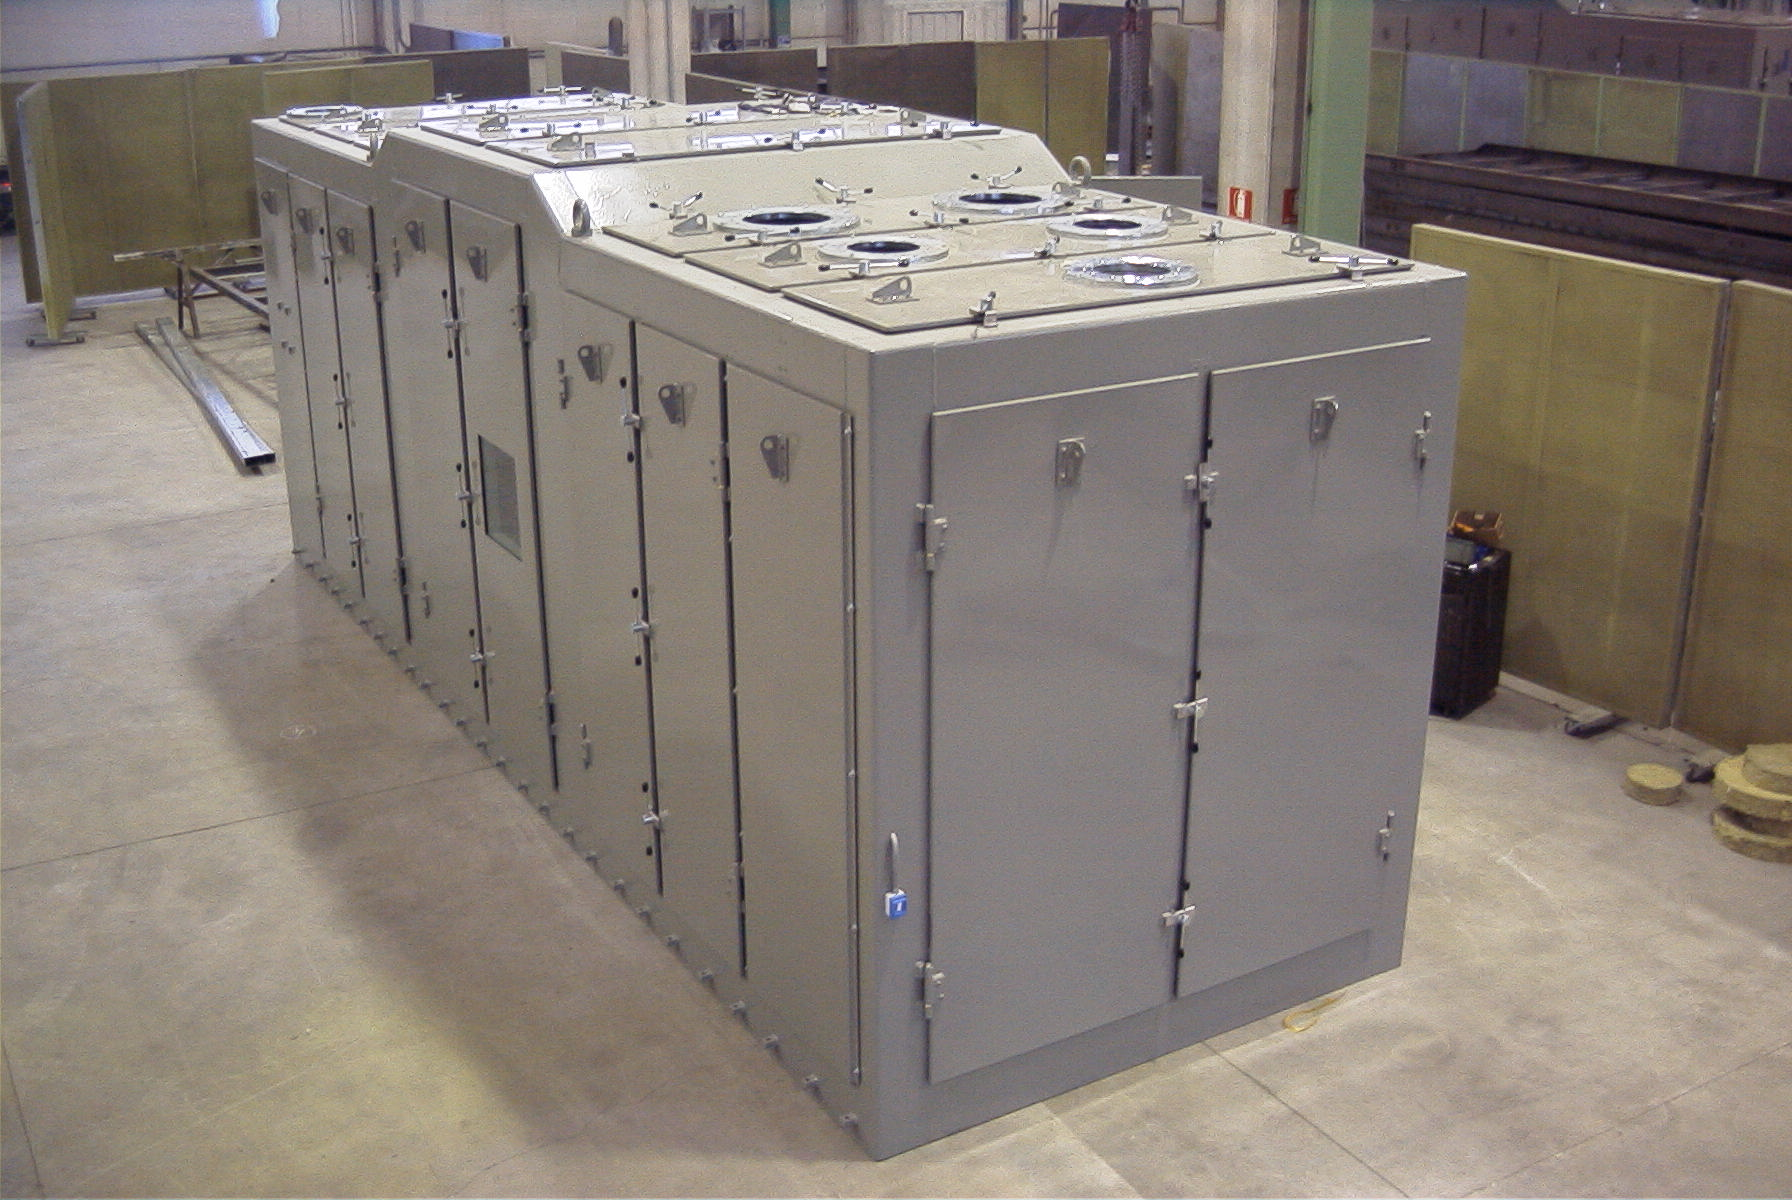 Diesel Genset Enclosure for Navy Application